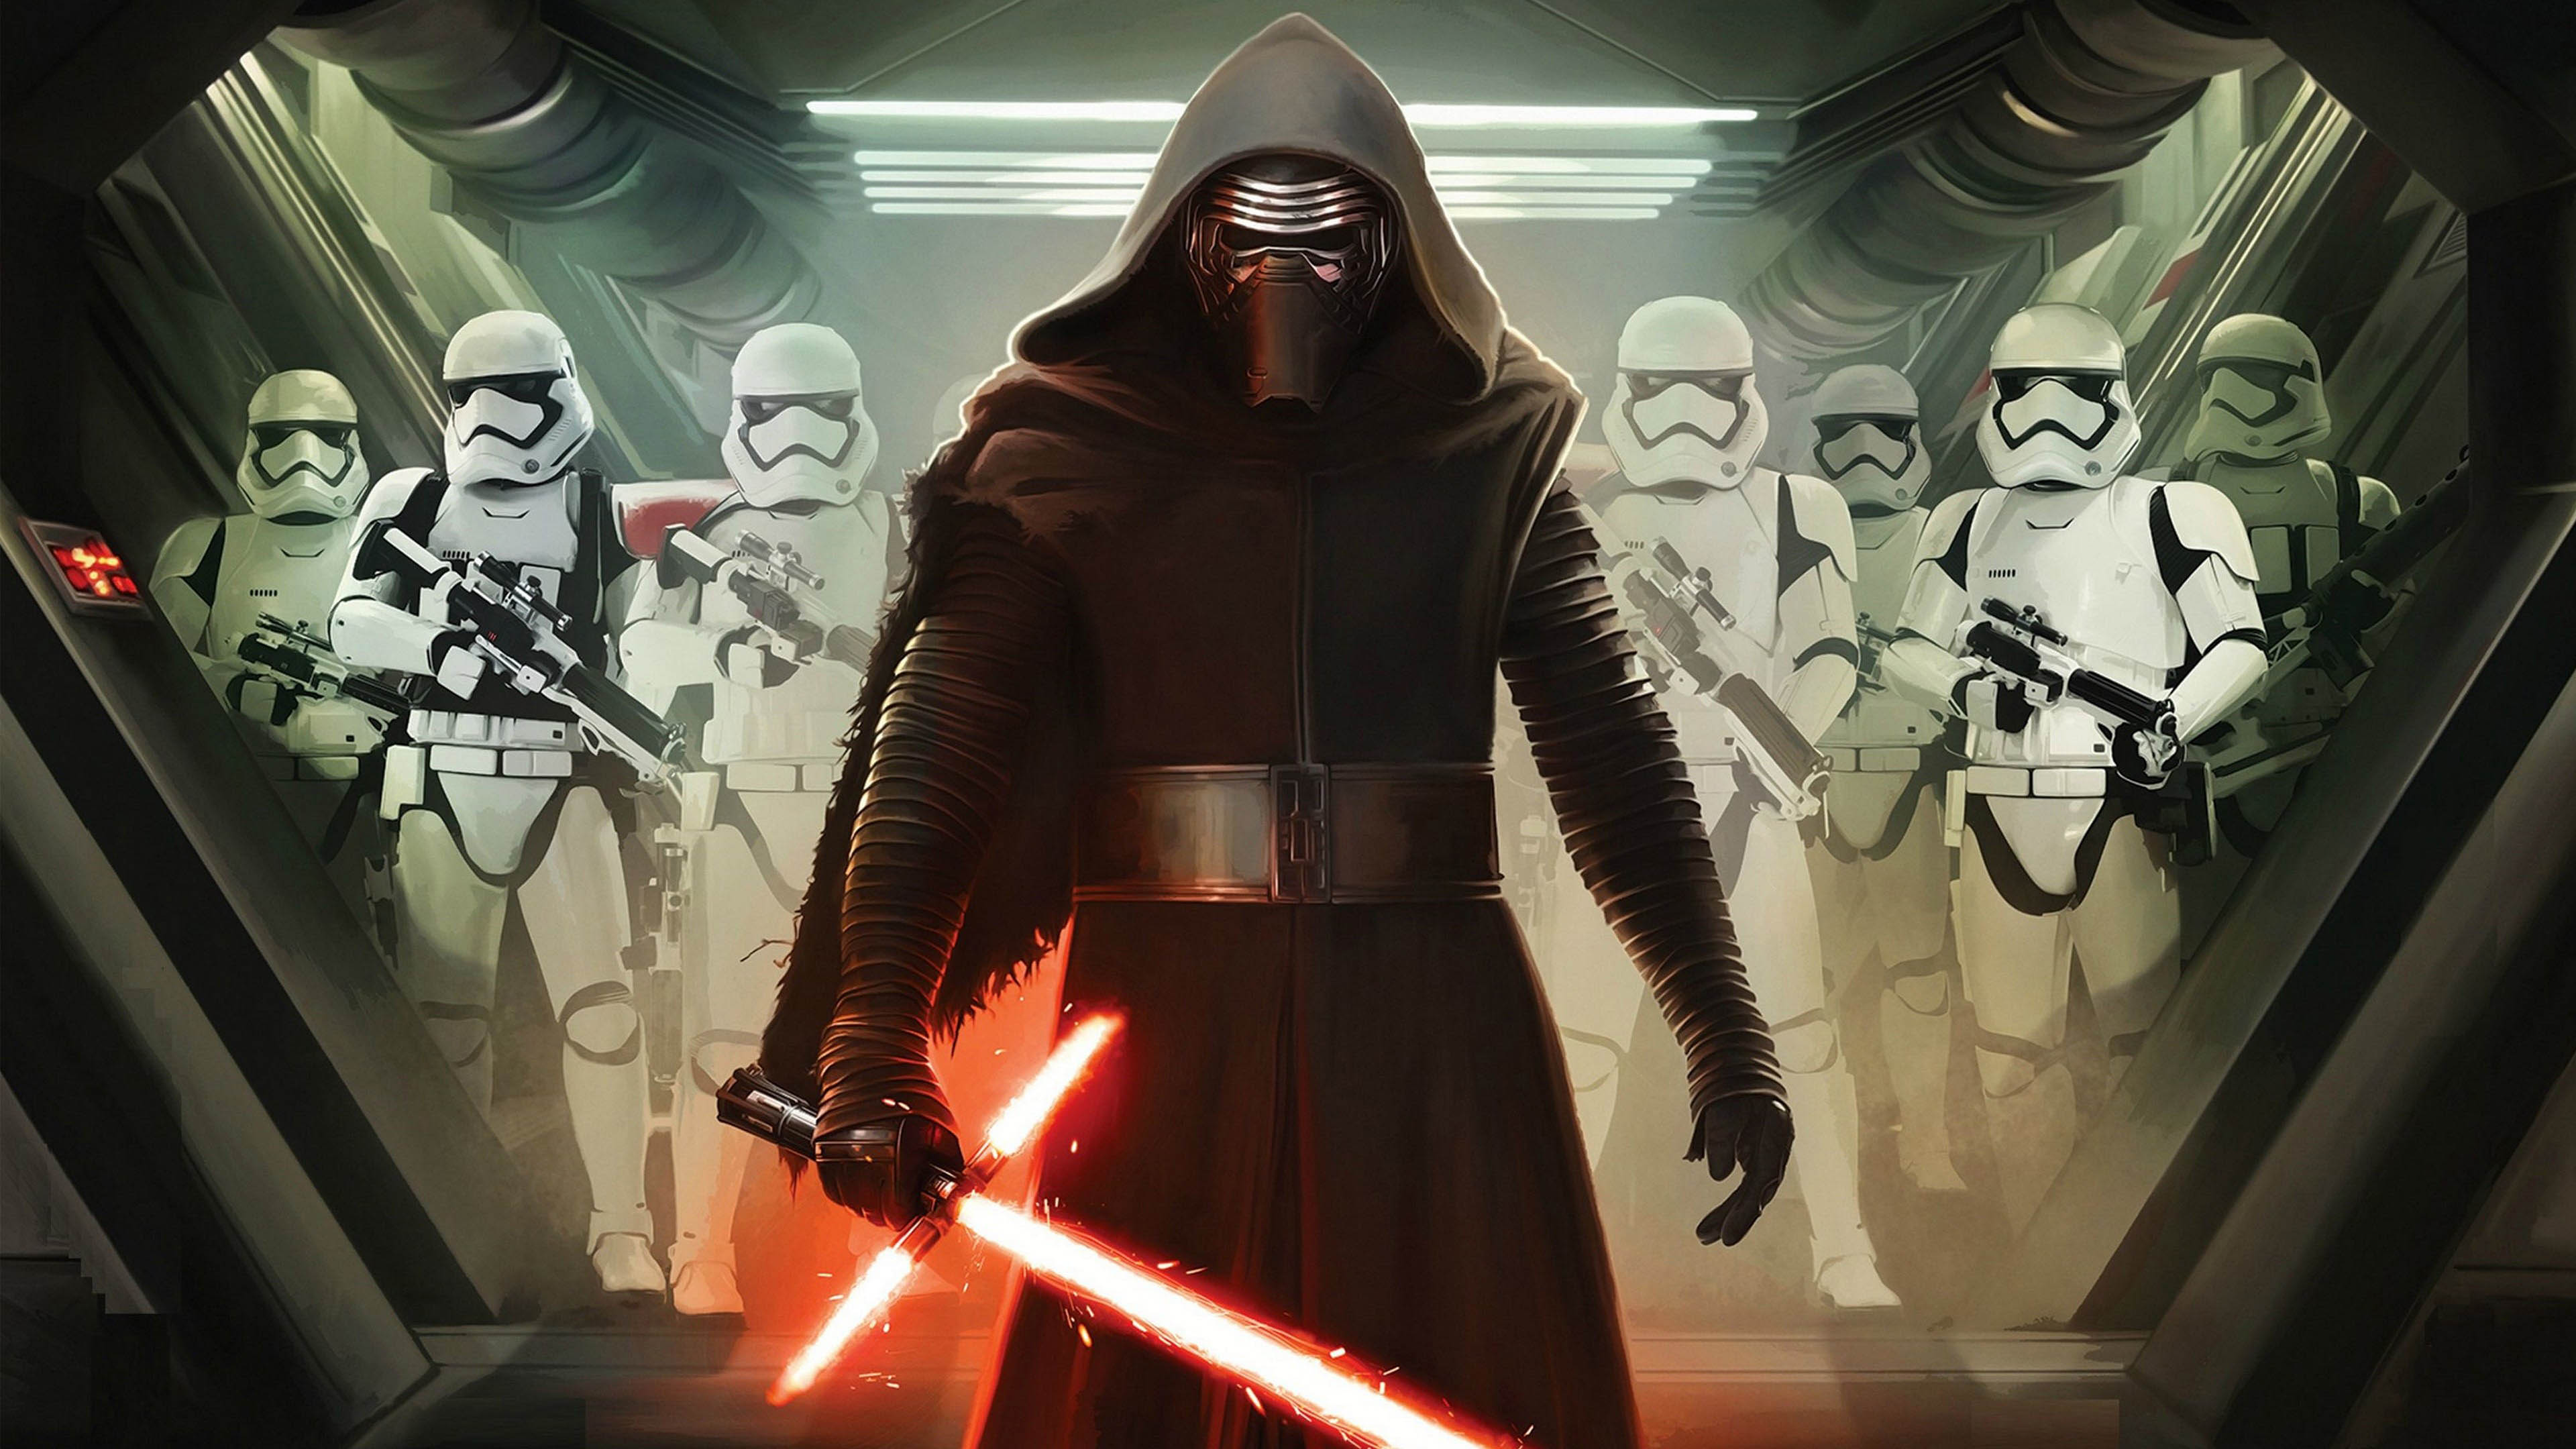 star-wars-7-the-force-awakens-kylo-ren-stormtroopers-wallpaper-5217